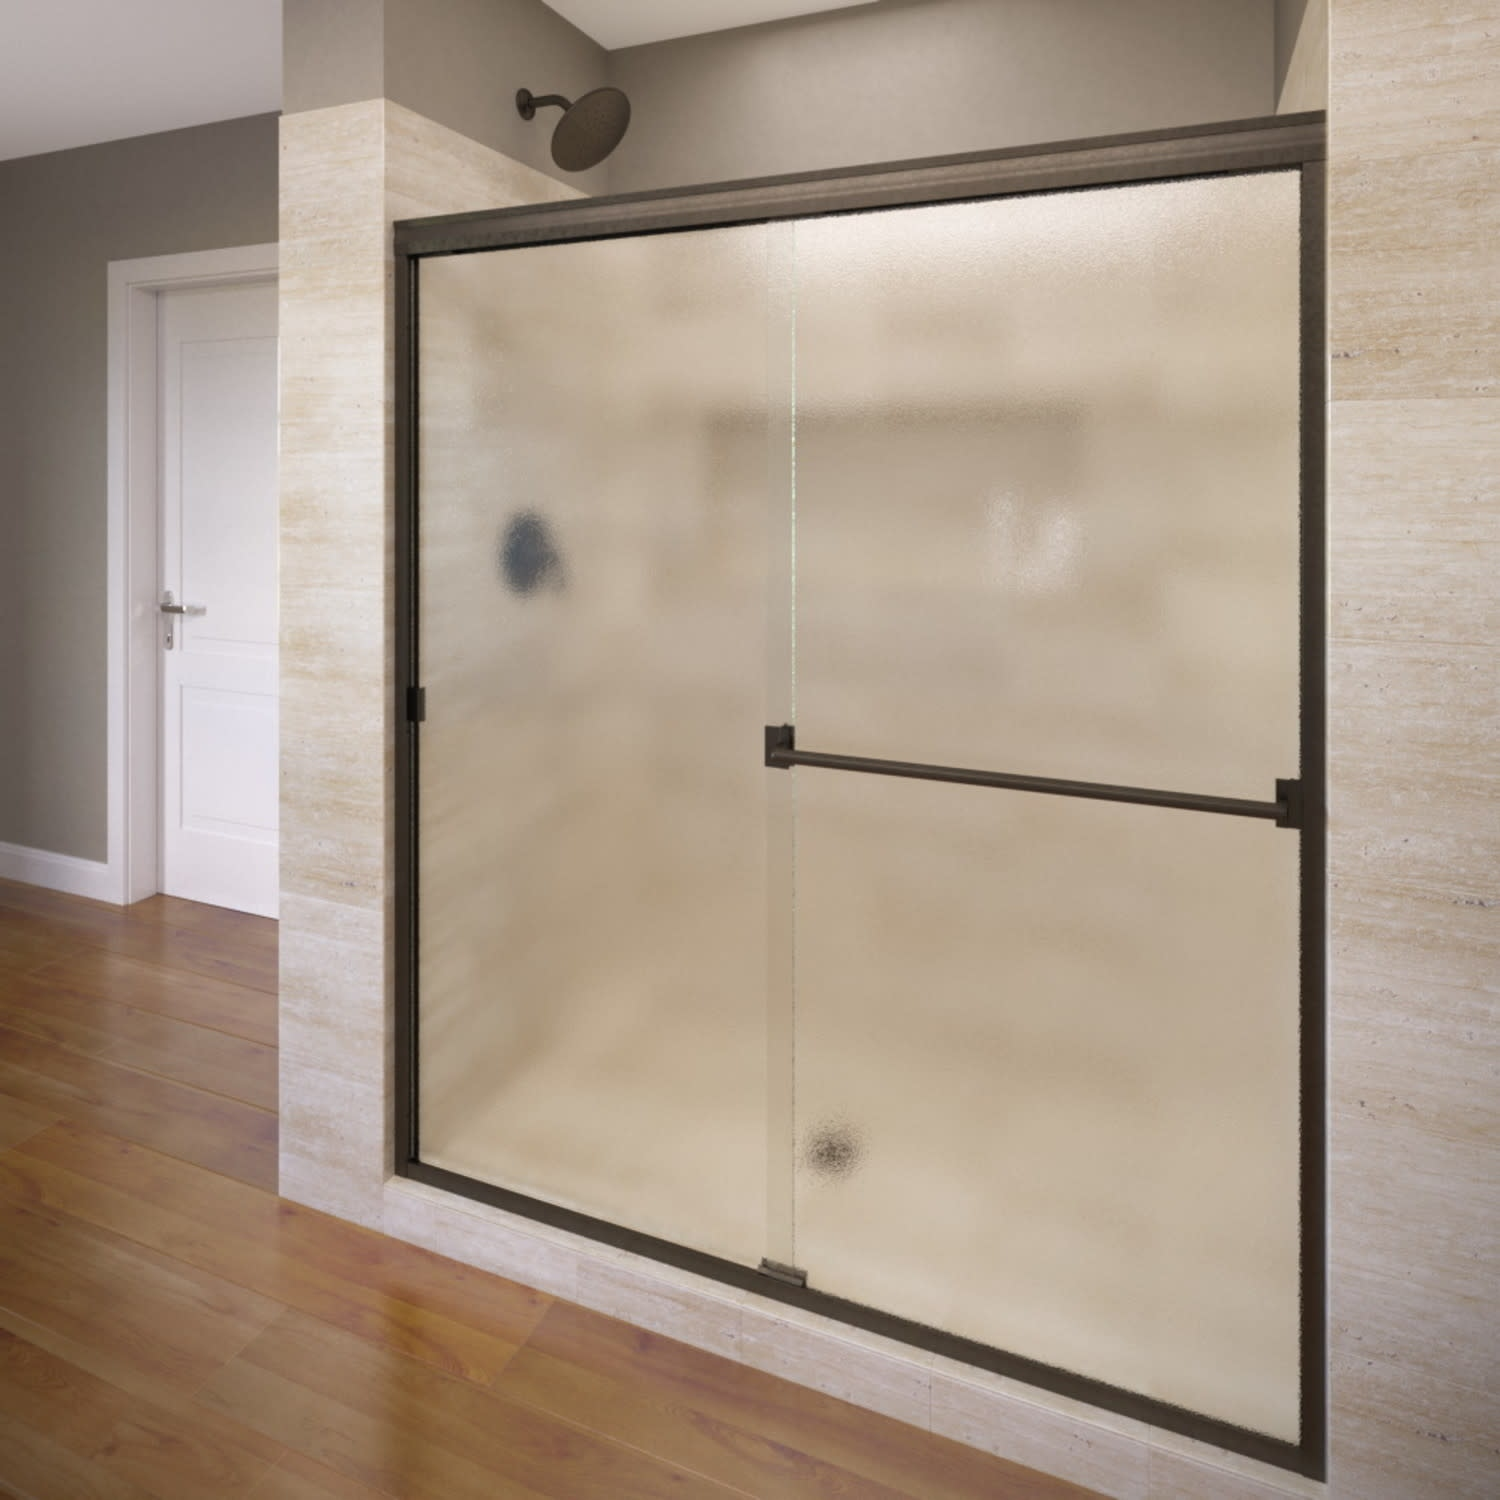 Basco 3500 44sob Classic 65 1 2 High X 44 Wide Bypass Semi Frameless Shower Door With Obscured Glass